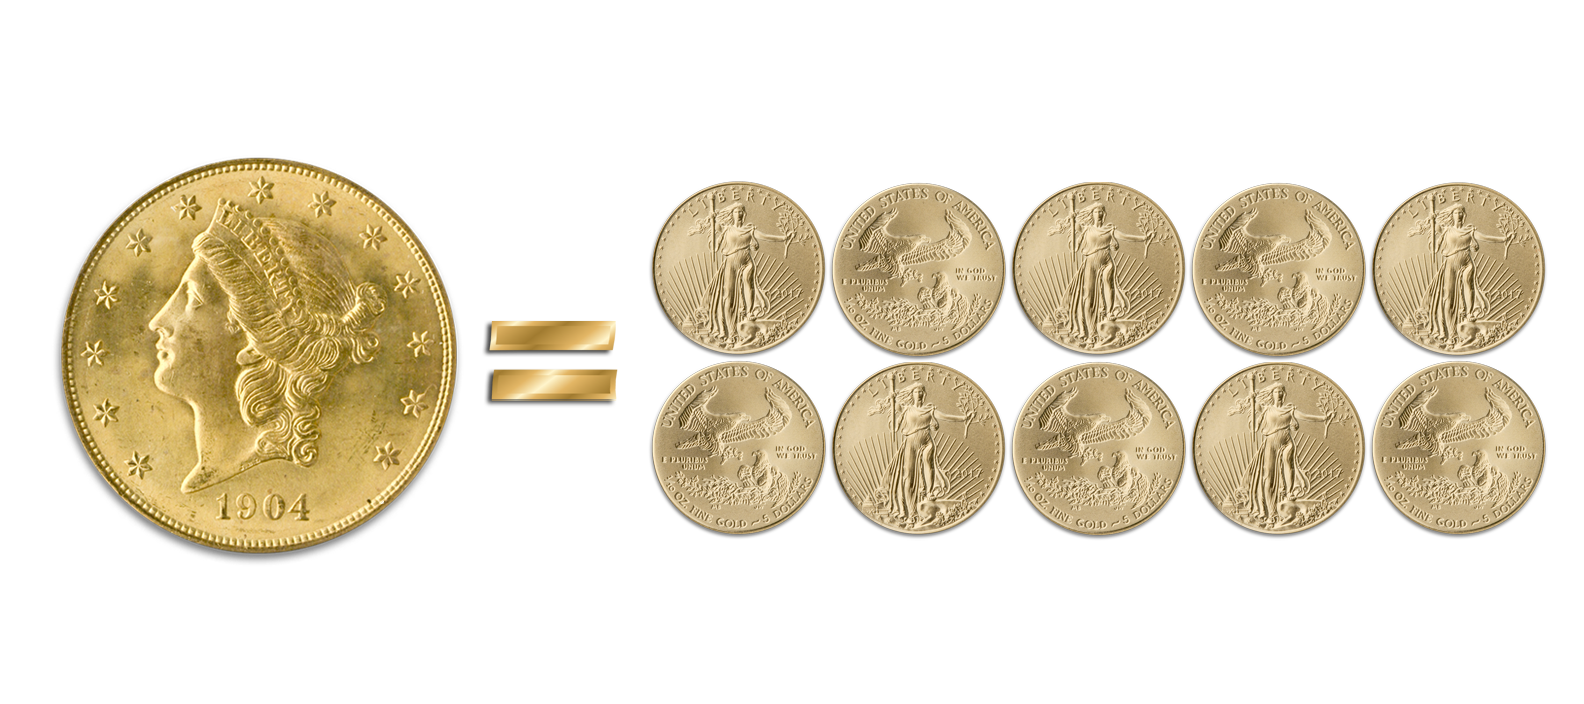 Purchase a $14,500 rare coin, receive ten $5 American Gold Eagles